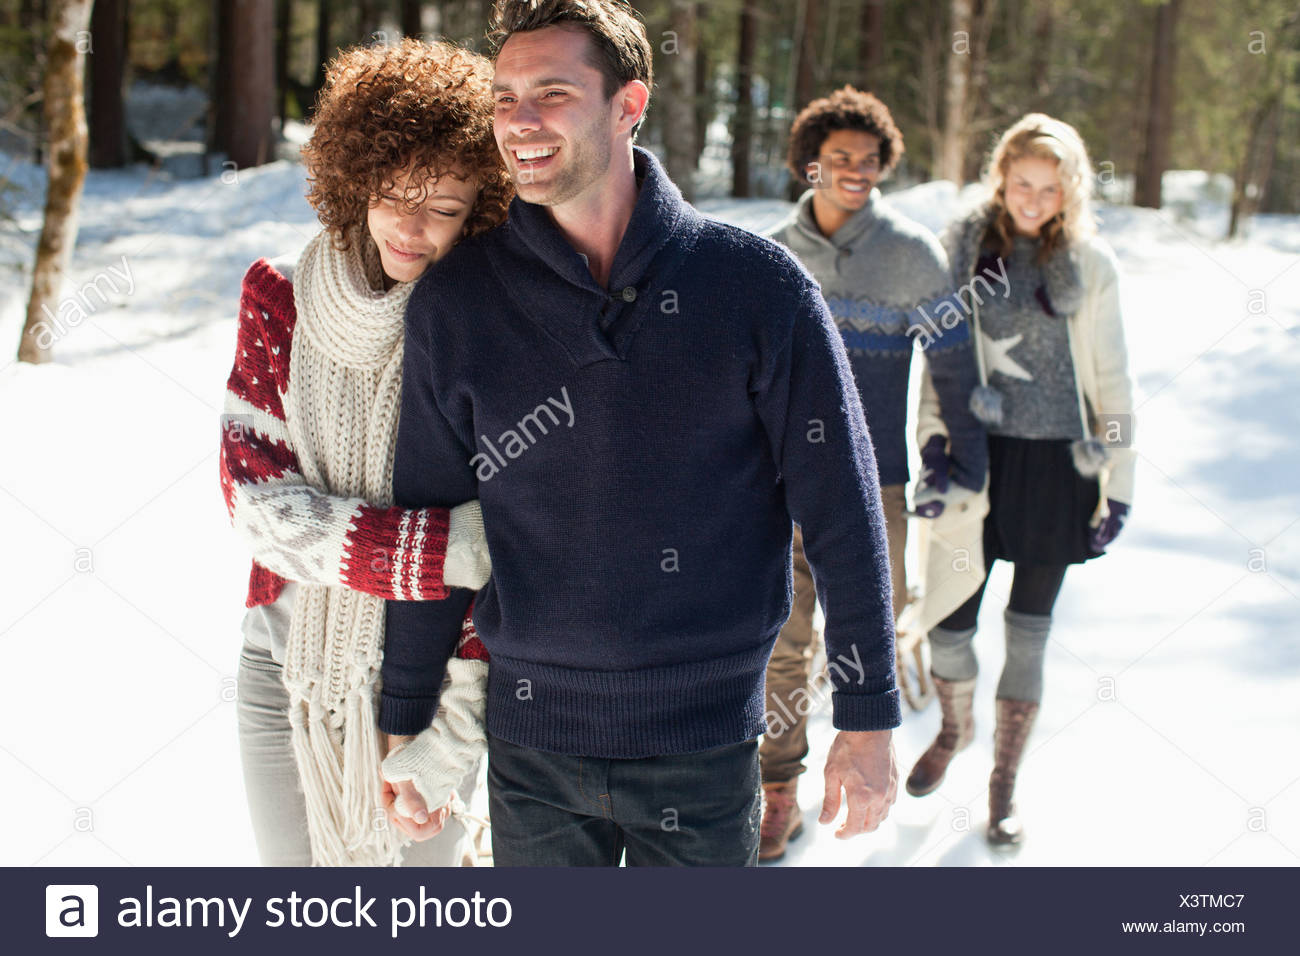 Two couples walking in snow - Stock Image